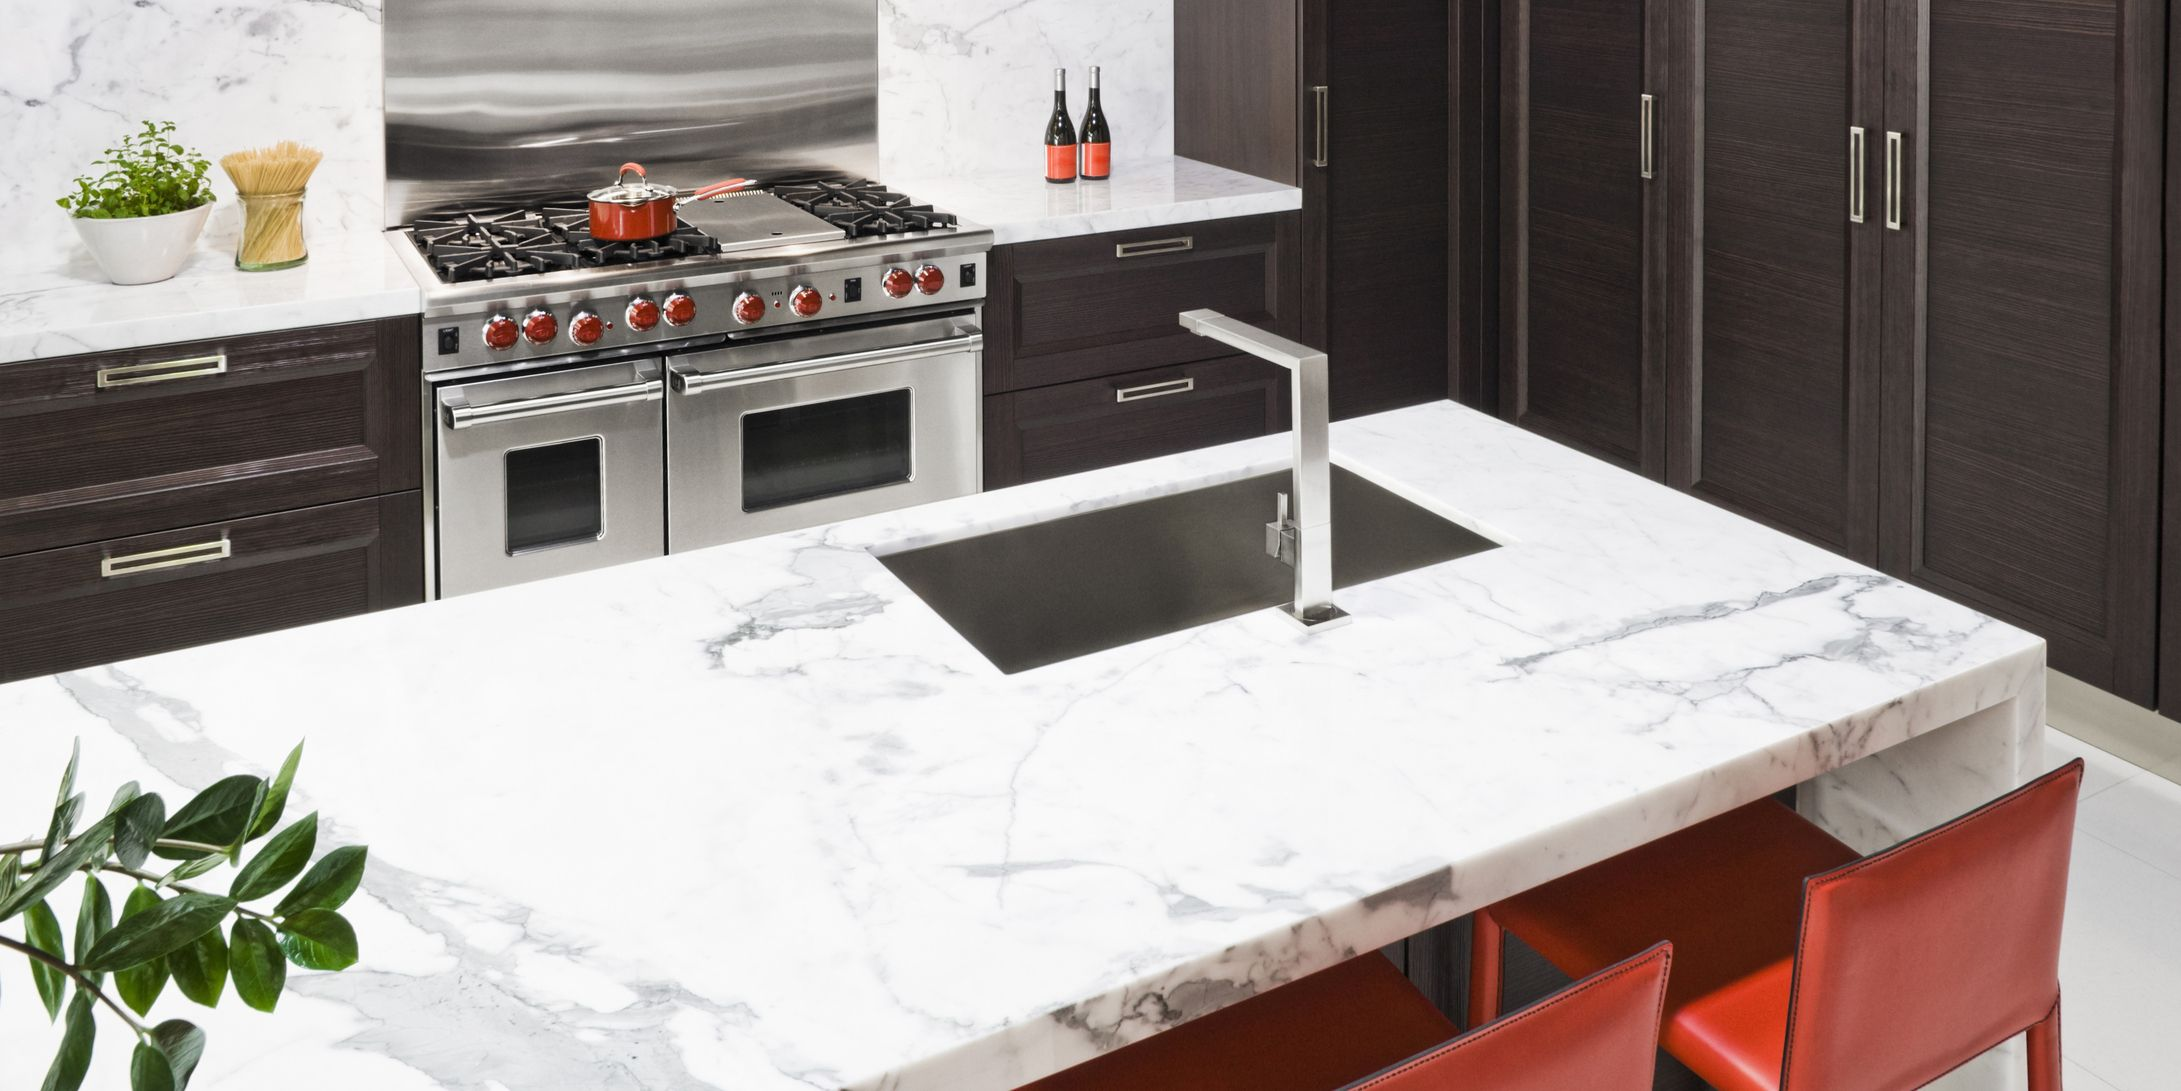 Granite Countertops Heat Damage Pros And Cons Of Marble Countertops Case Against Marble Counters